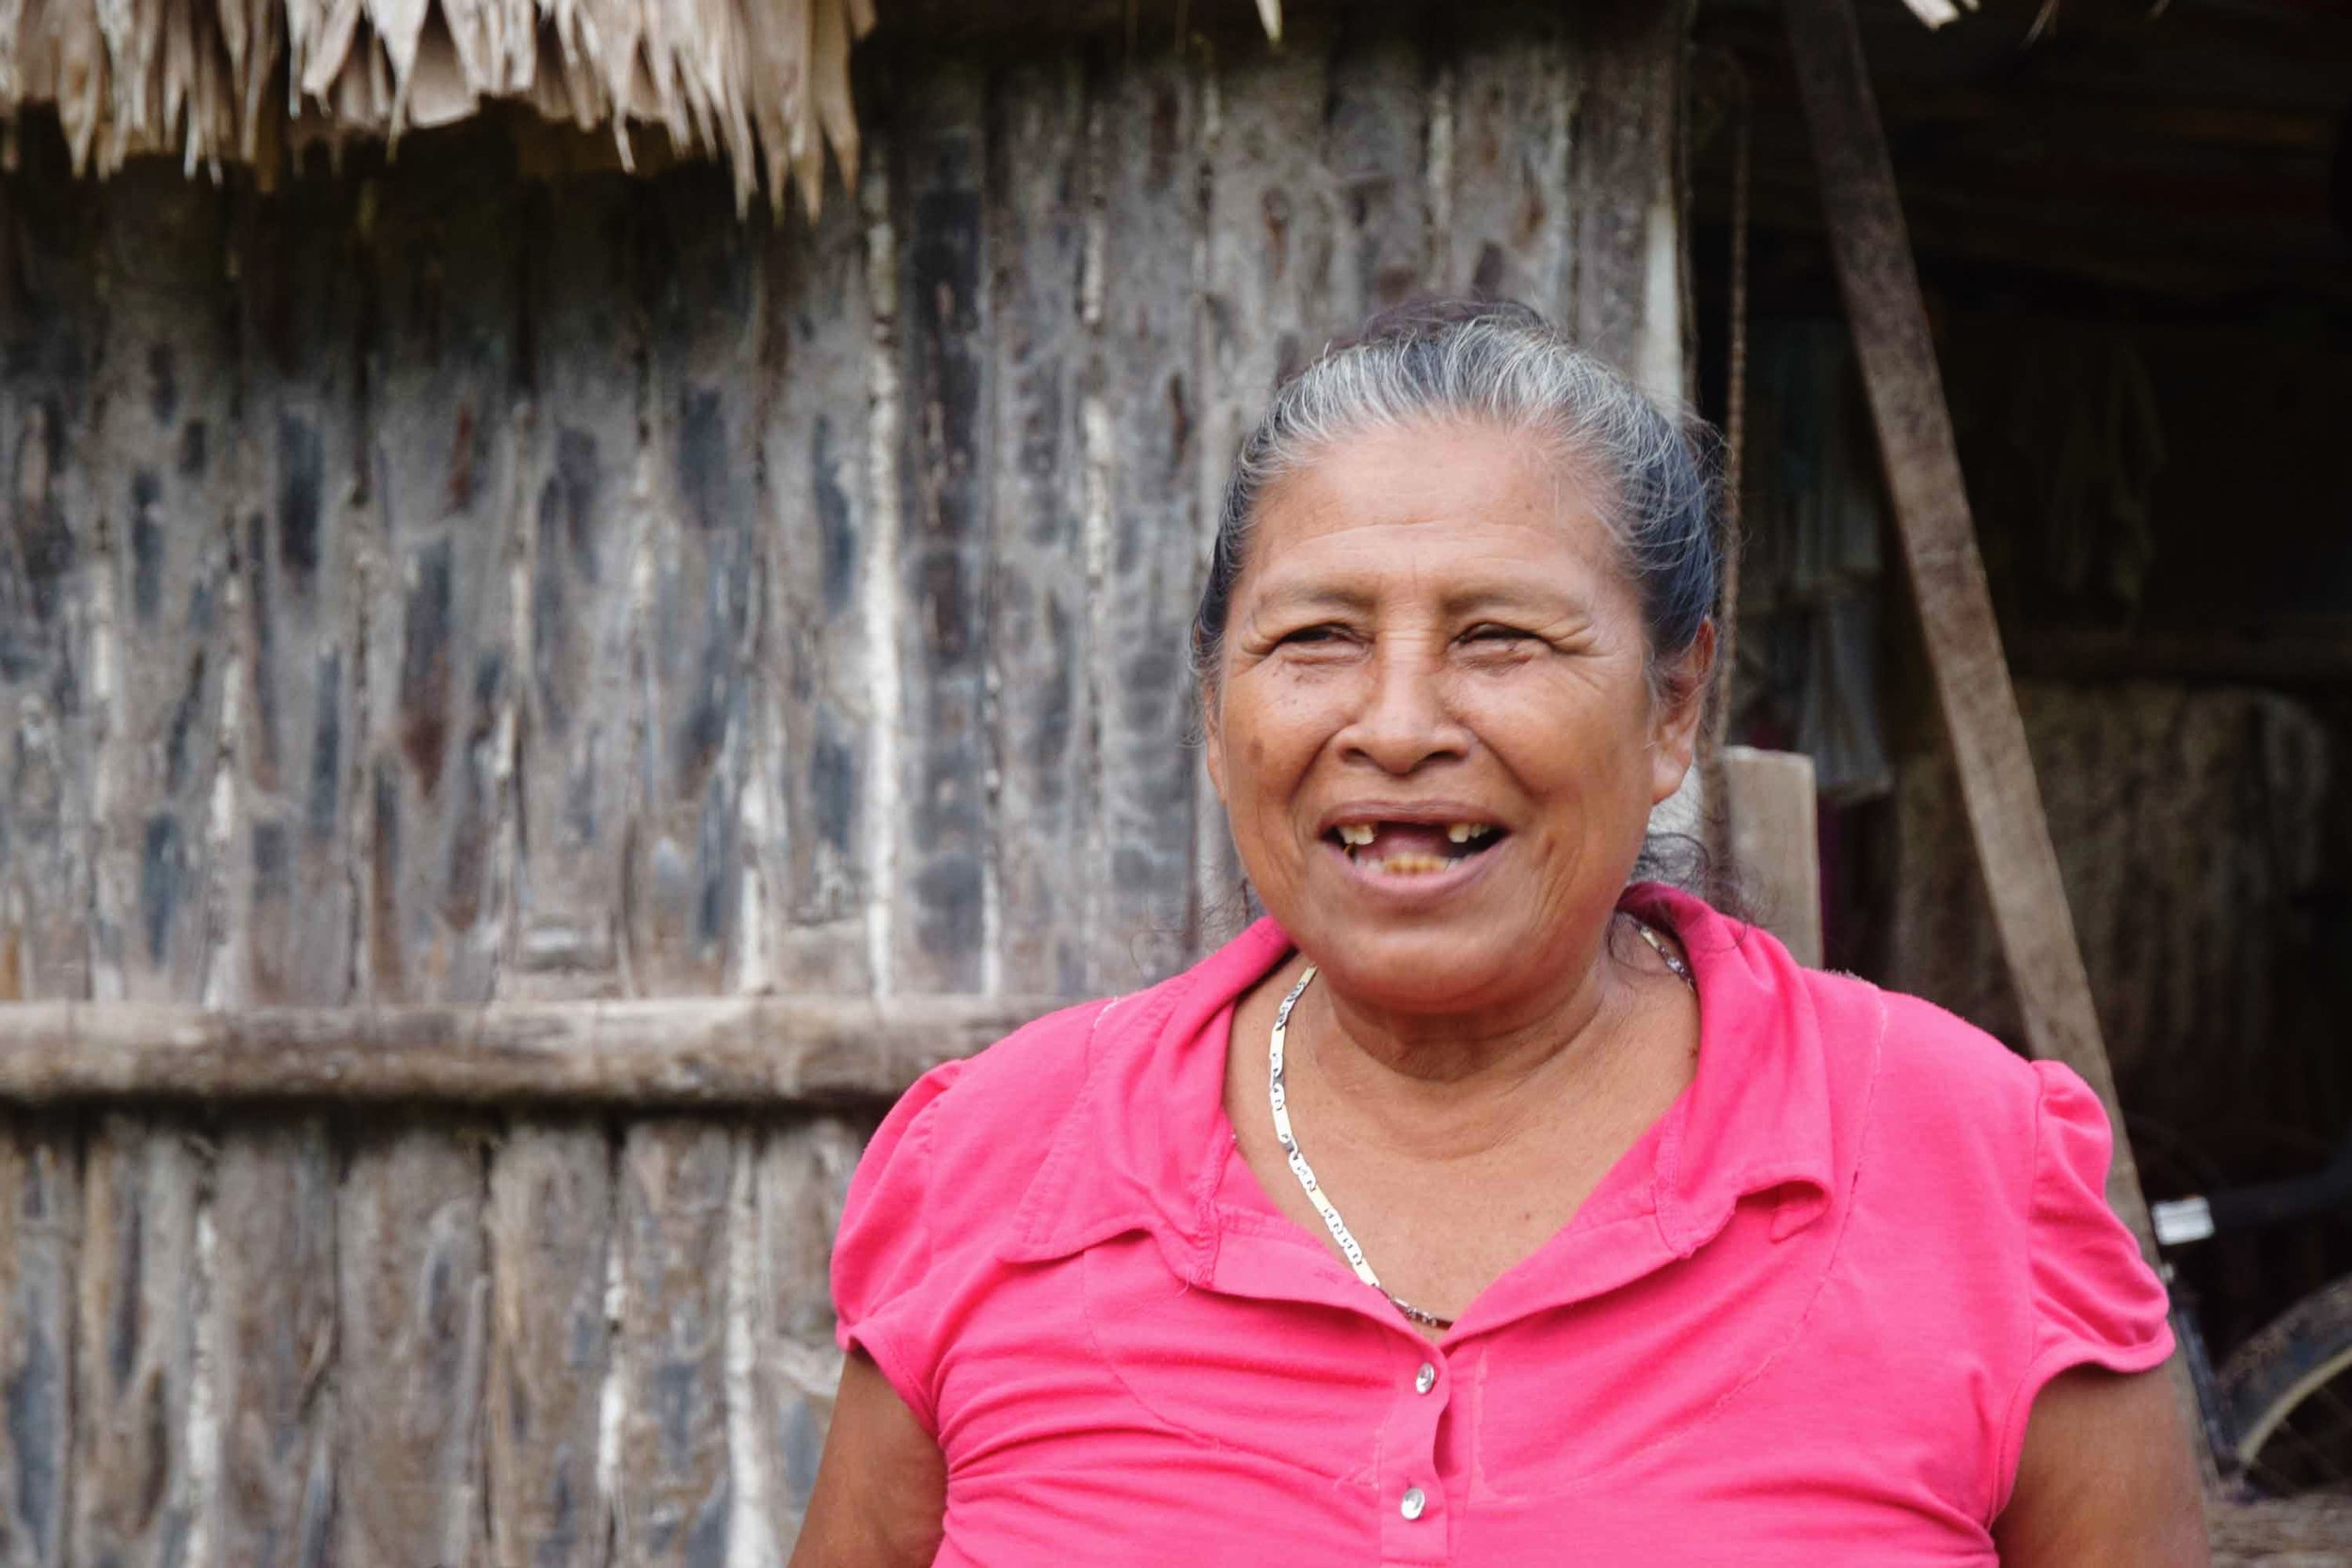 Because of supporters like you, Josefa and her family now grow their own food supply, using regenerative farming methods that nourish people and the planet.